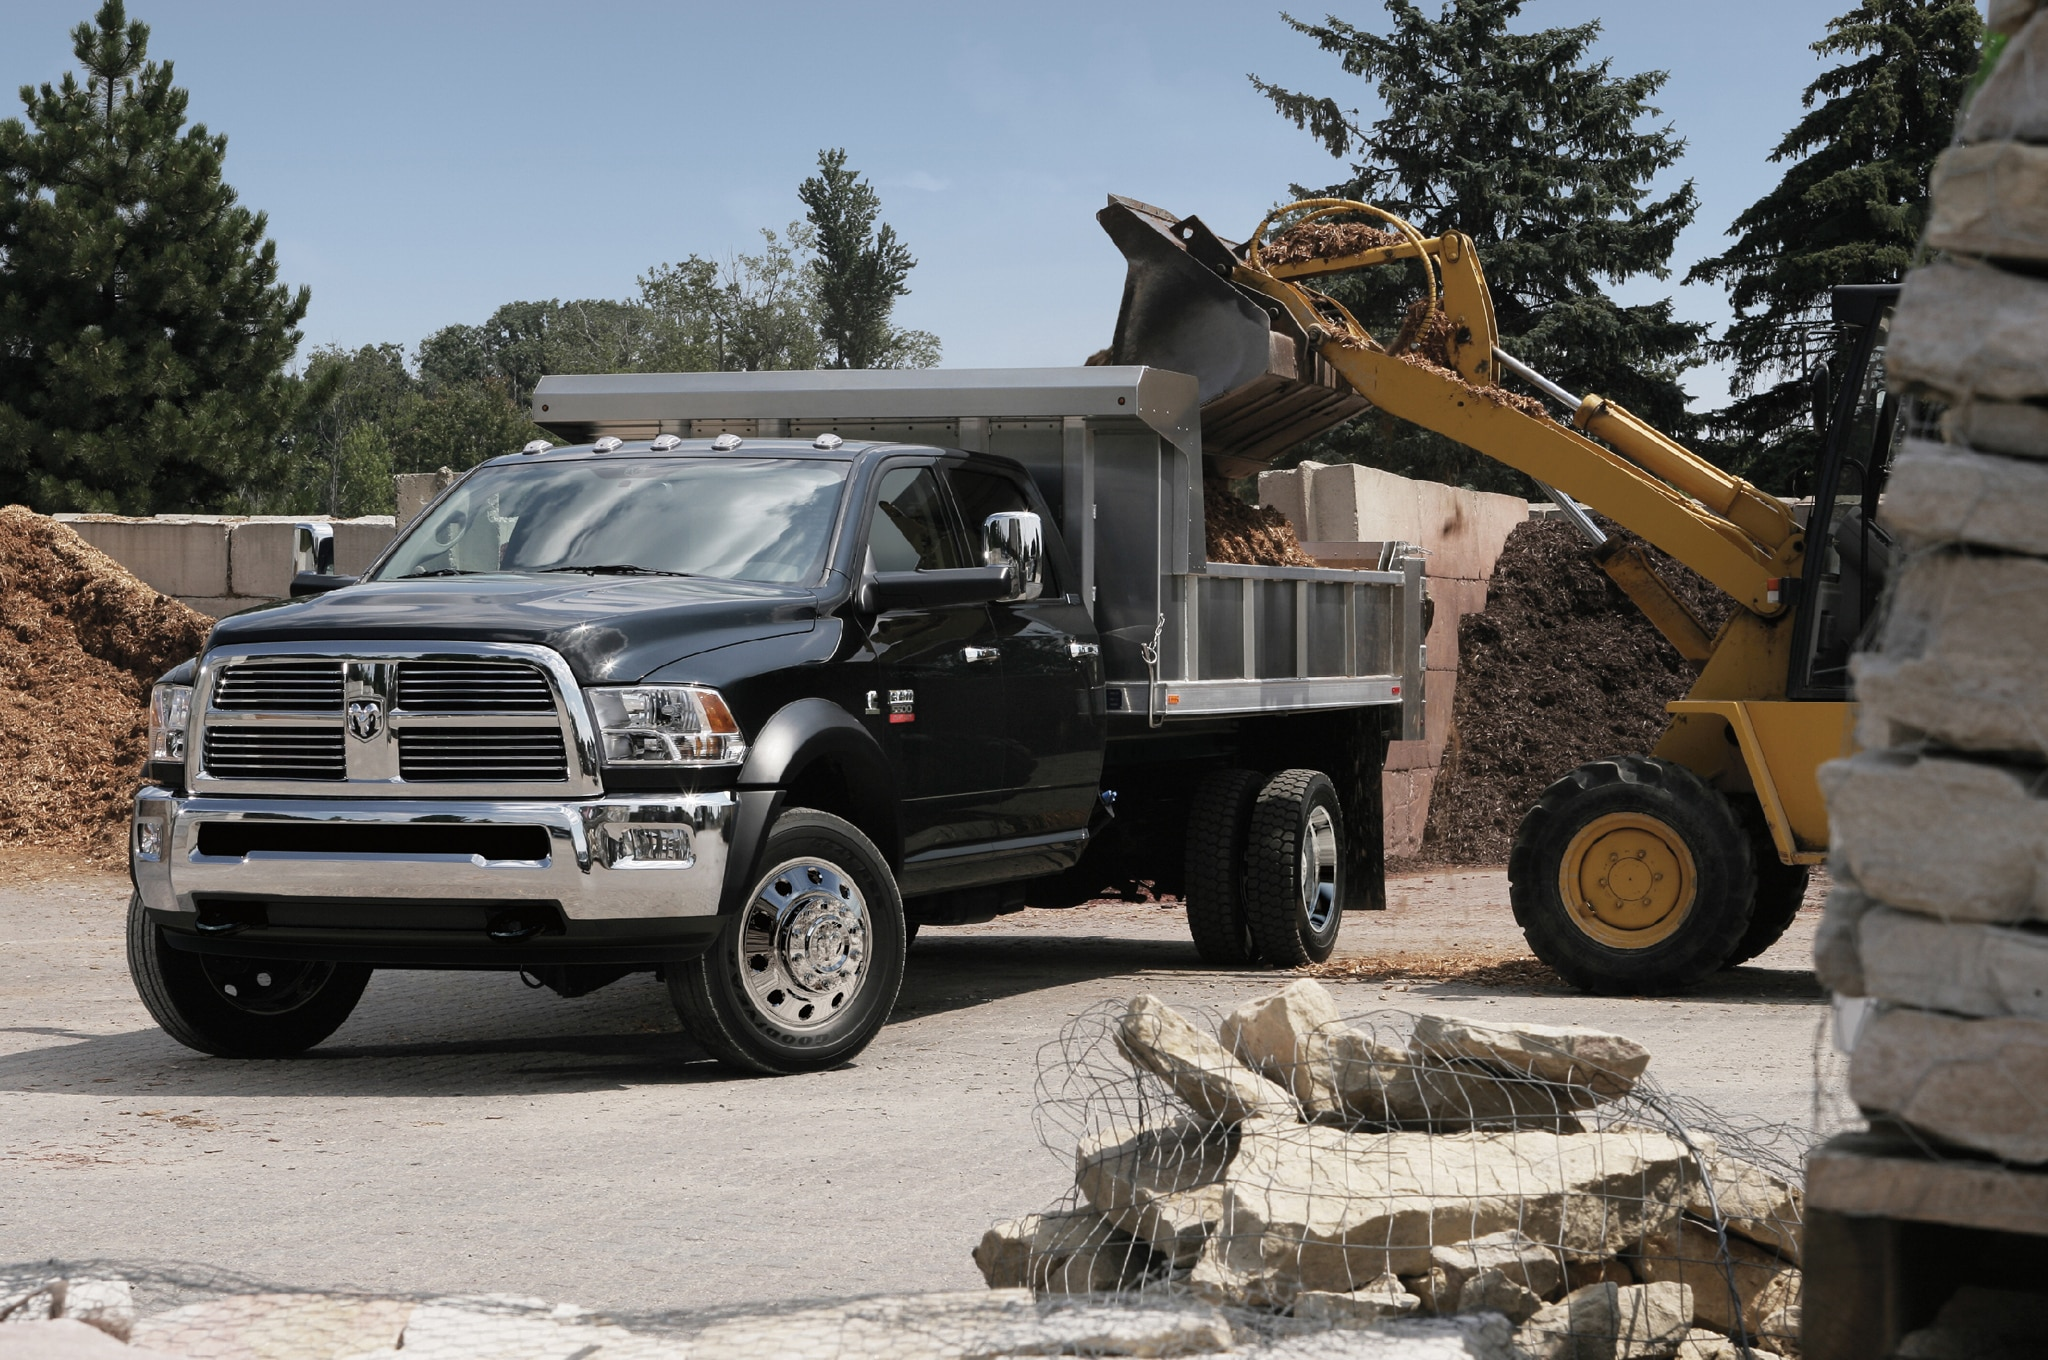 2012 Ram 3500, 4500, 5500 Recalled For Transmission Problem